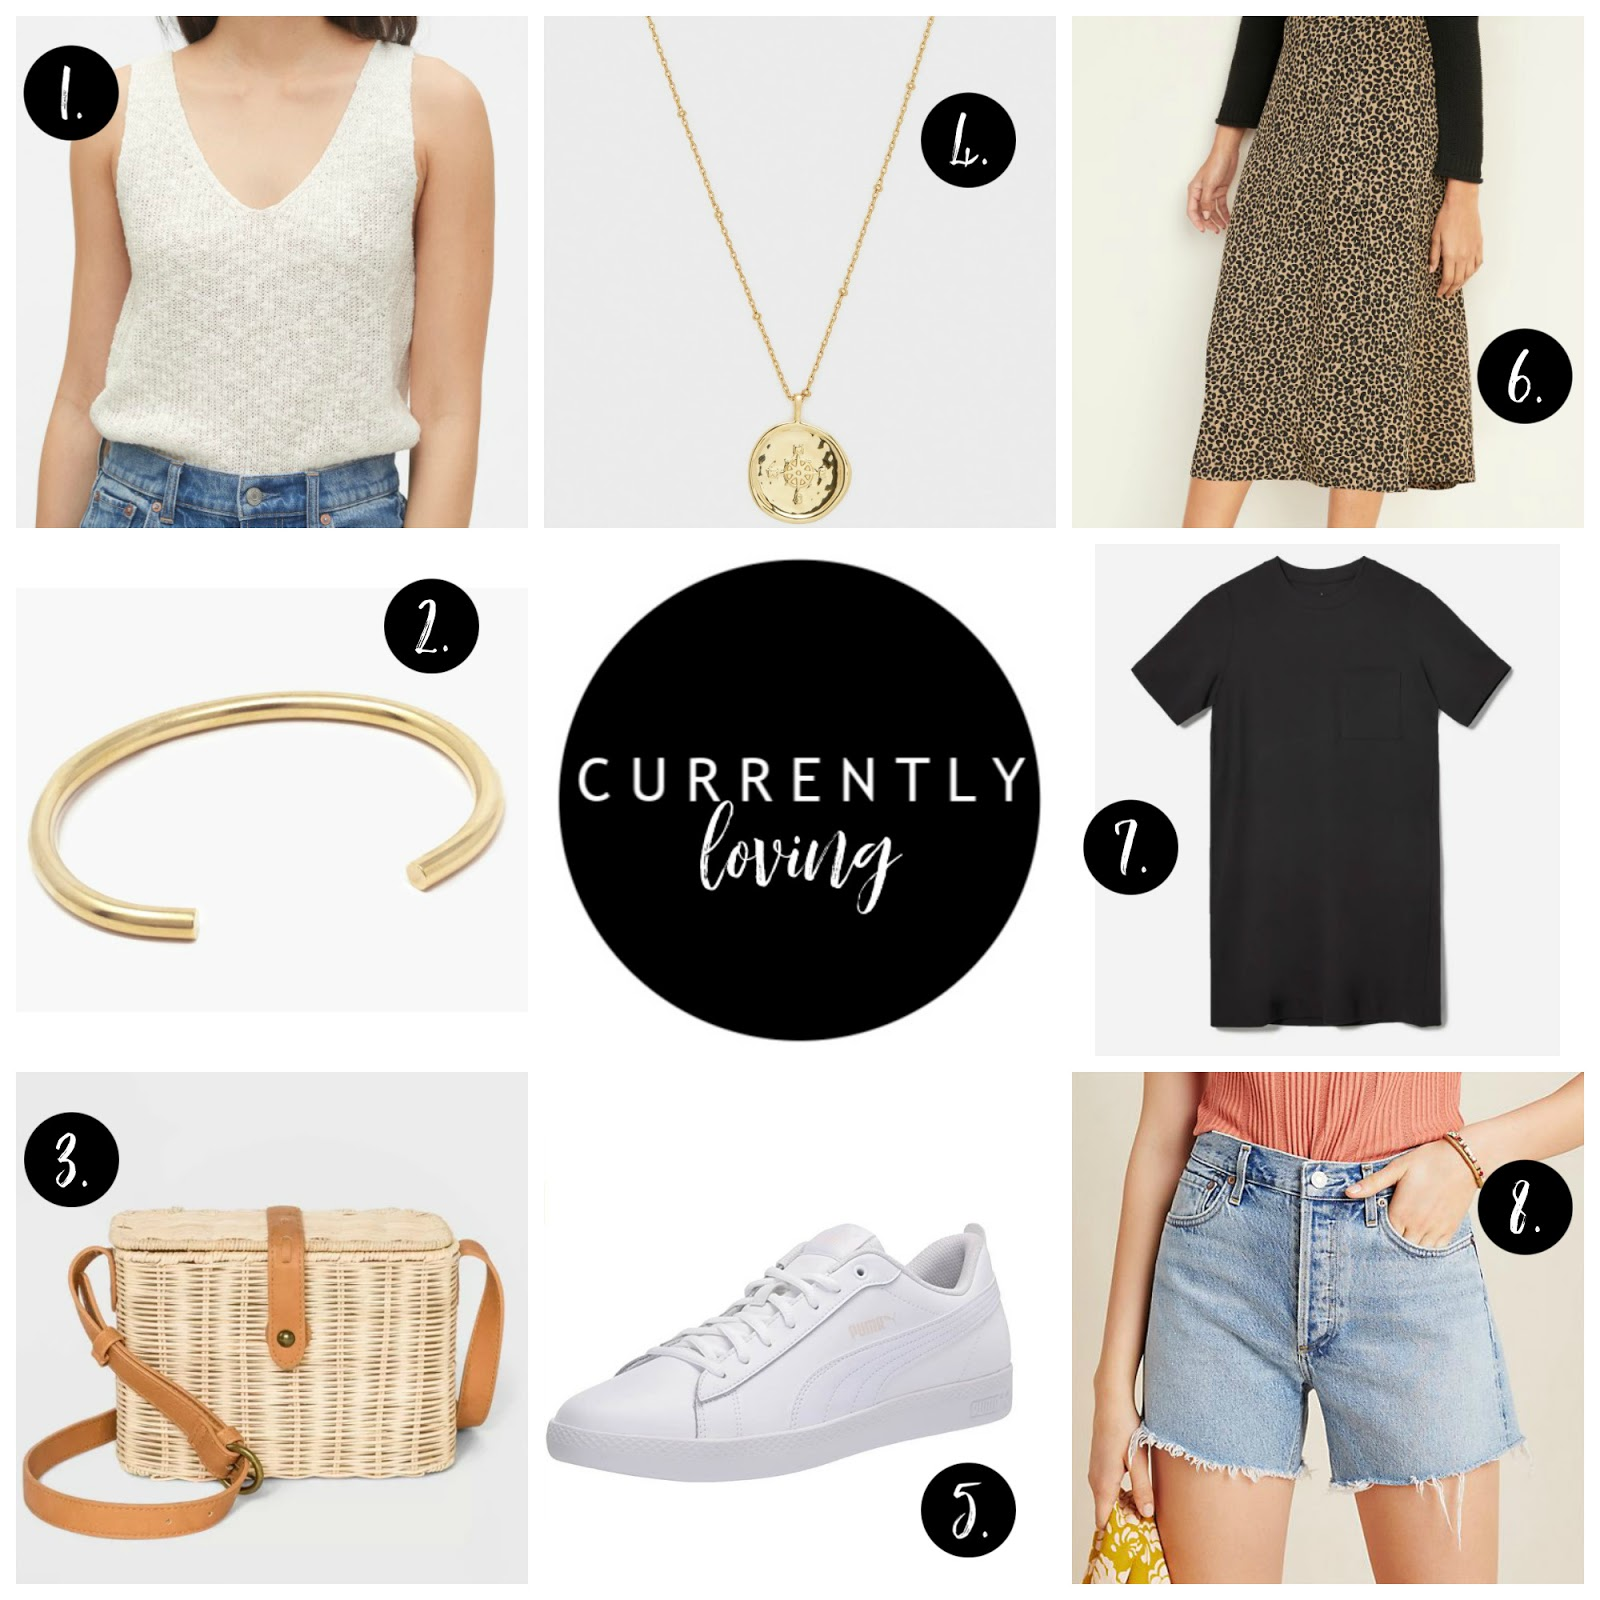 style on a budget, nc blogger, north carolina blogger, spring style, what to wear for spring, currently loving, mom style